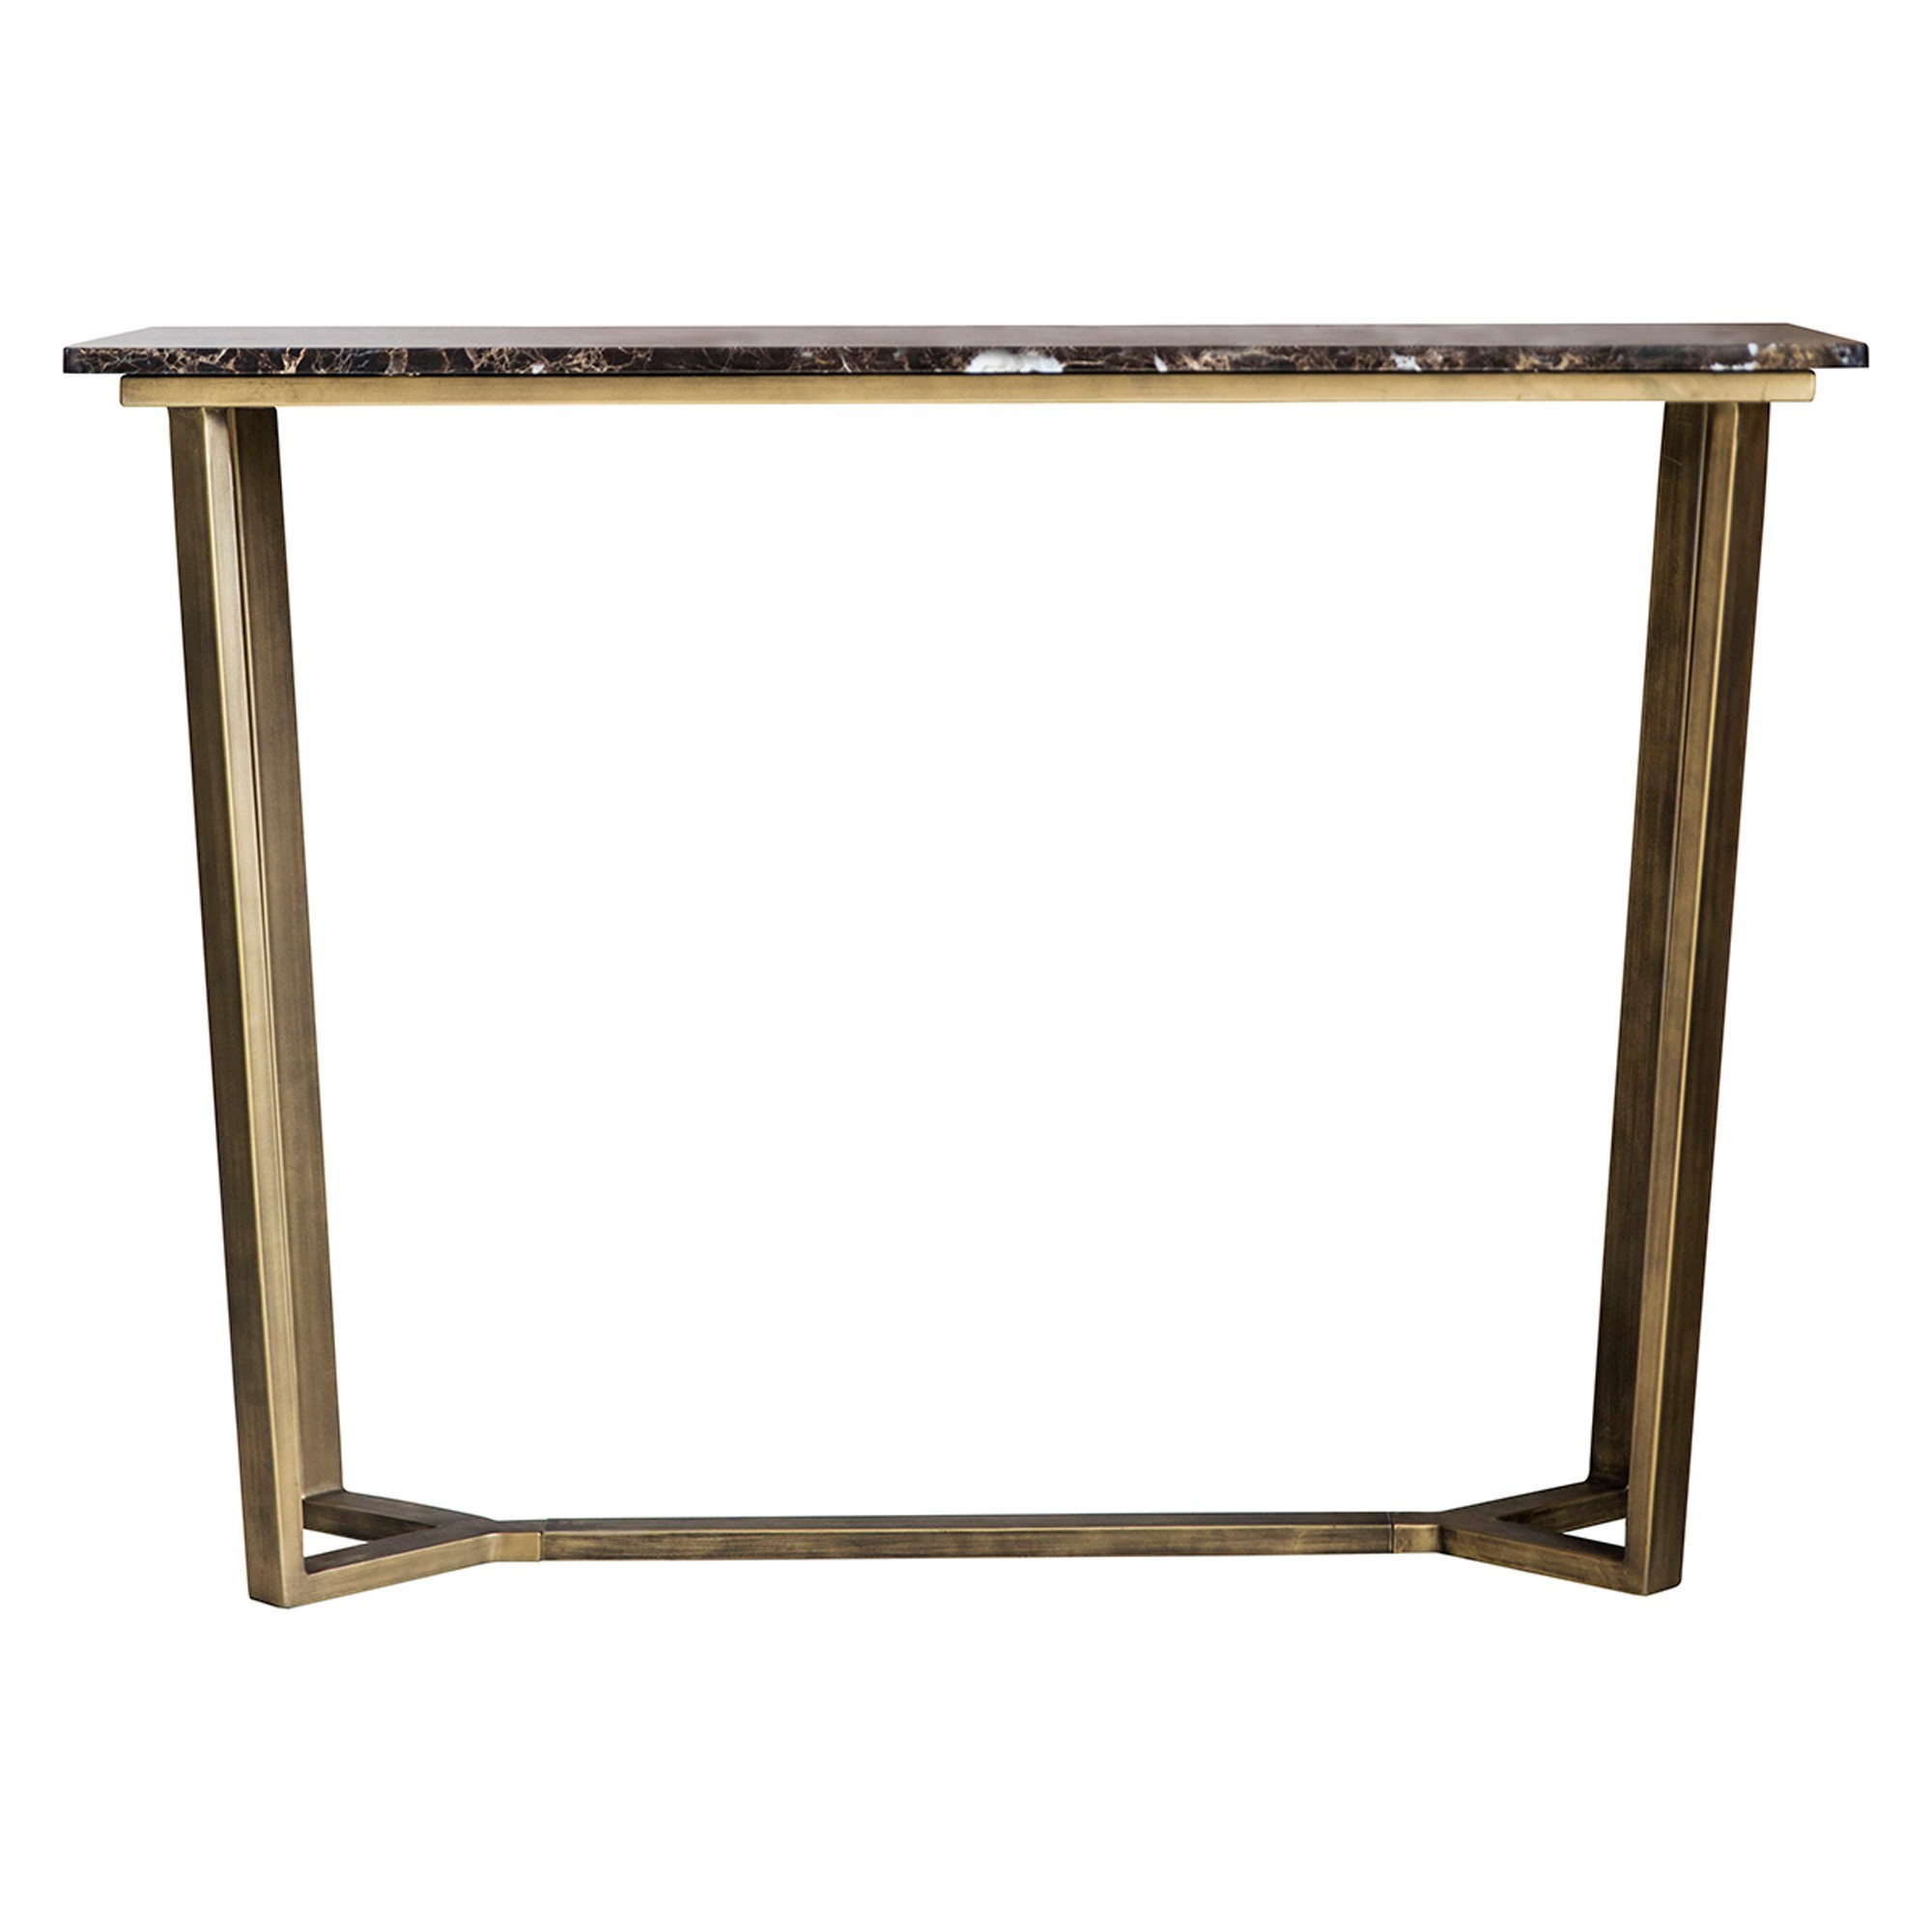 Emperor Marble Top Console Table, 110cm, Brown / Brass